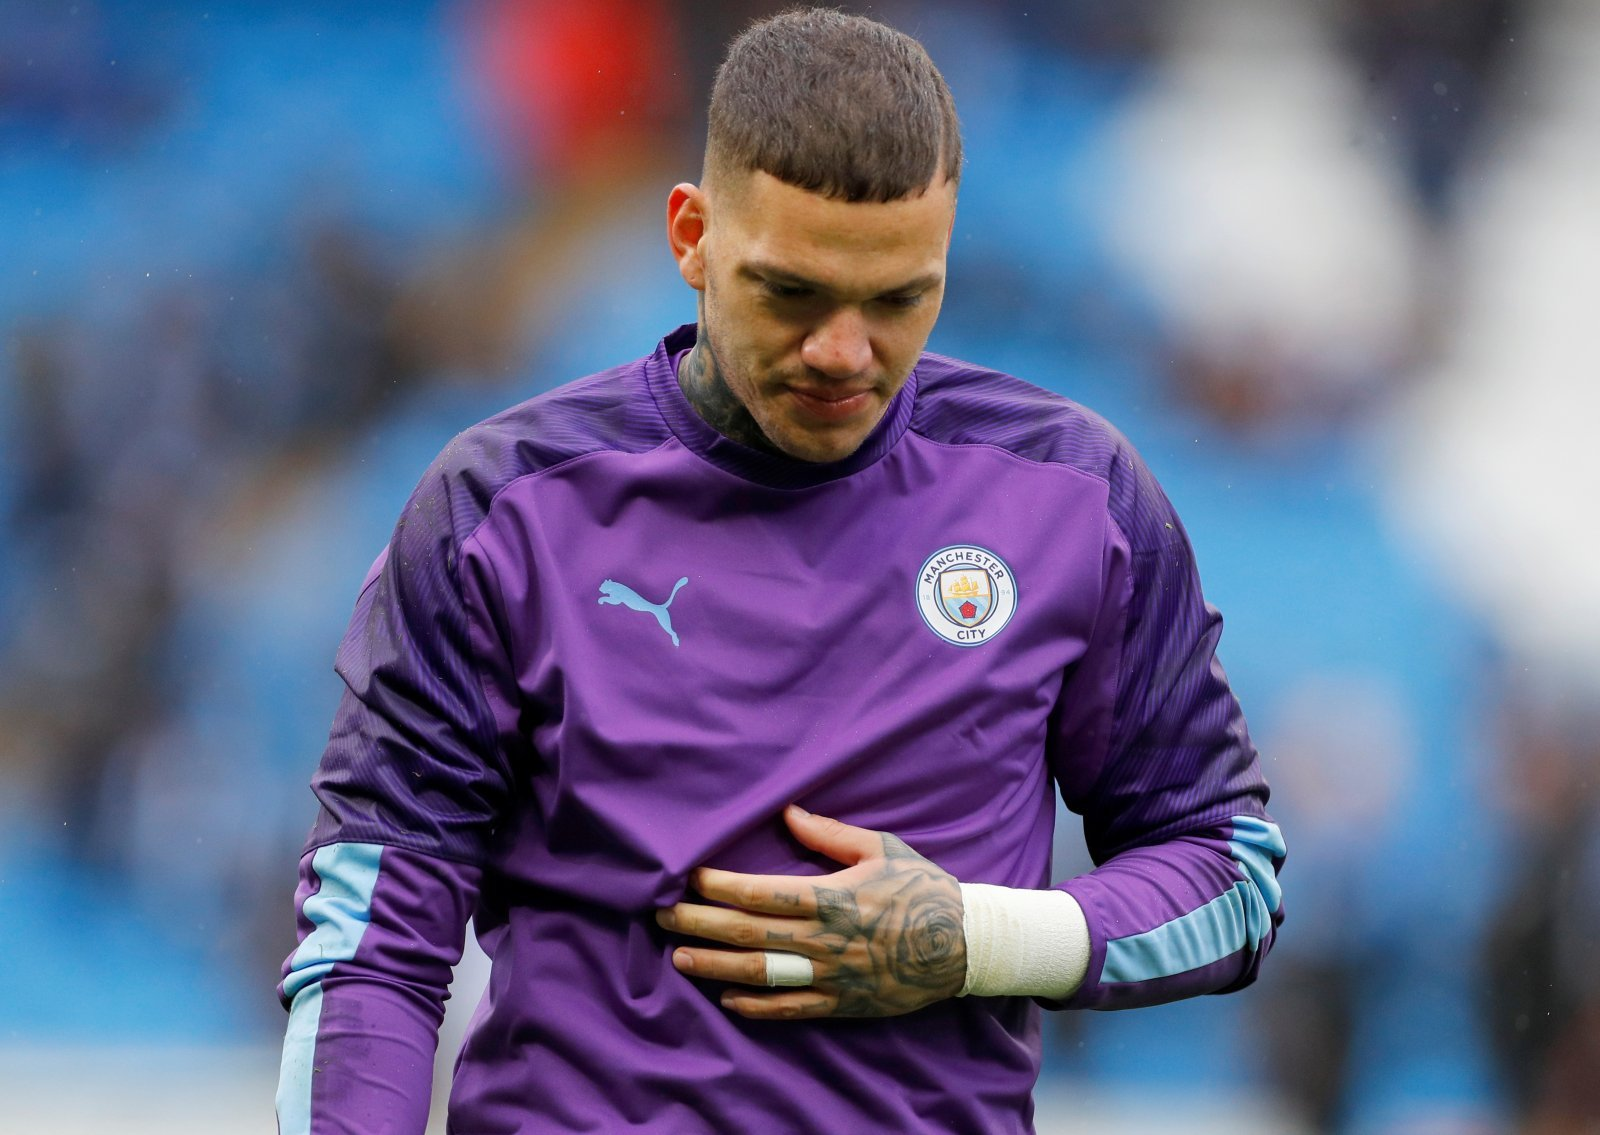 Manchester City's Ederson Out Of Crucial Liverpool Clash